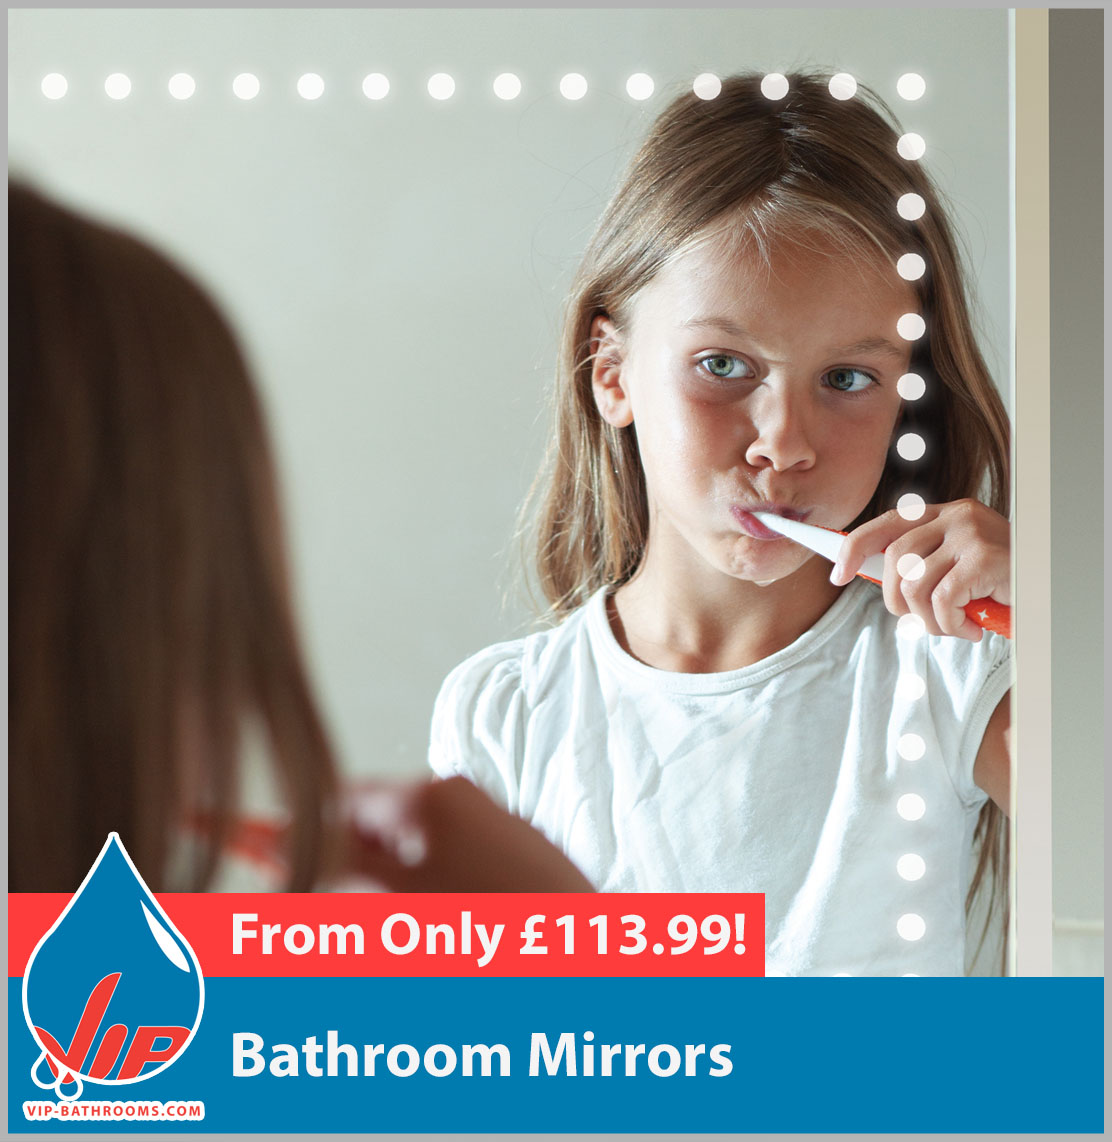 Click here to view our stunning designer Bathroom Mirrors